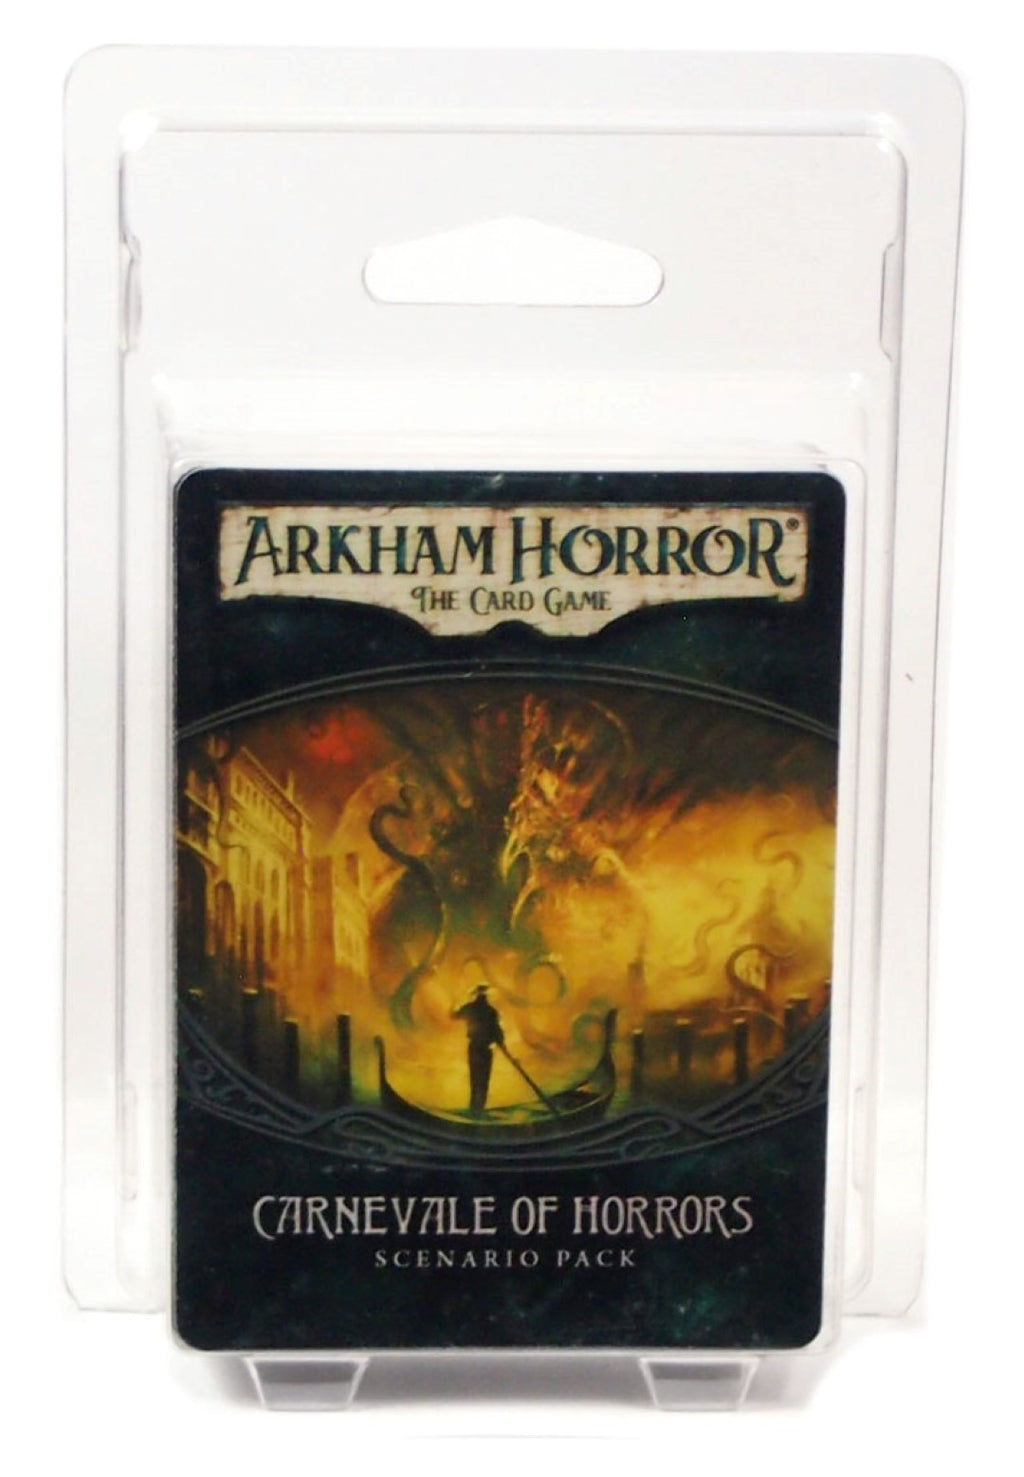 Arkham Horror LCG Carnevale of Horrors Scenario Pack